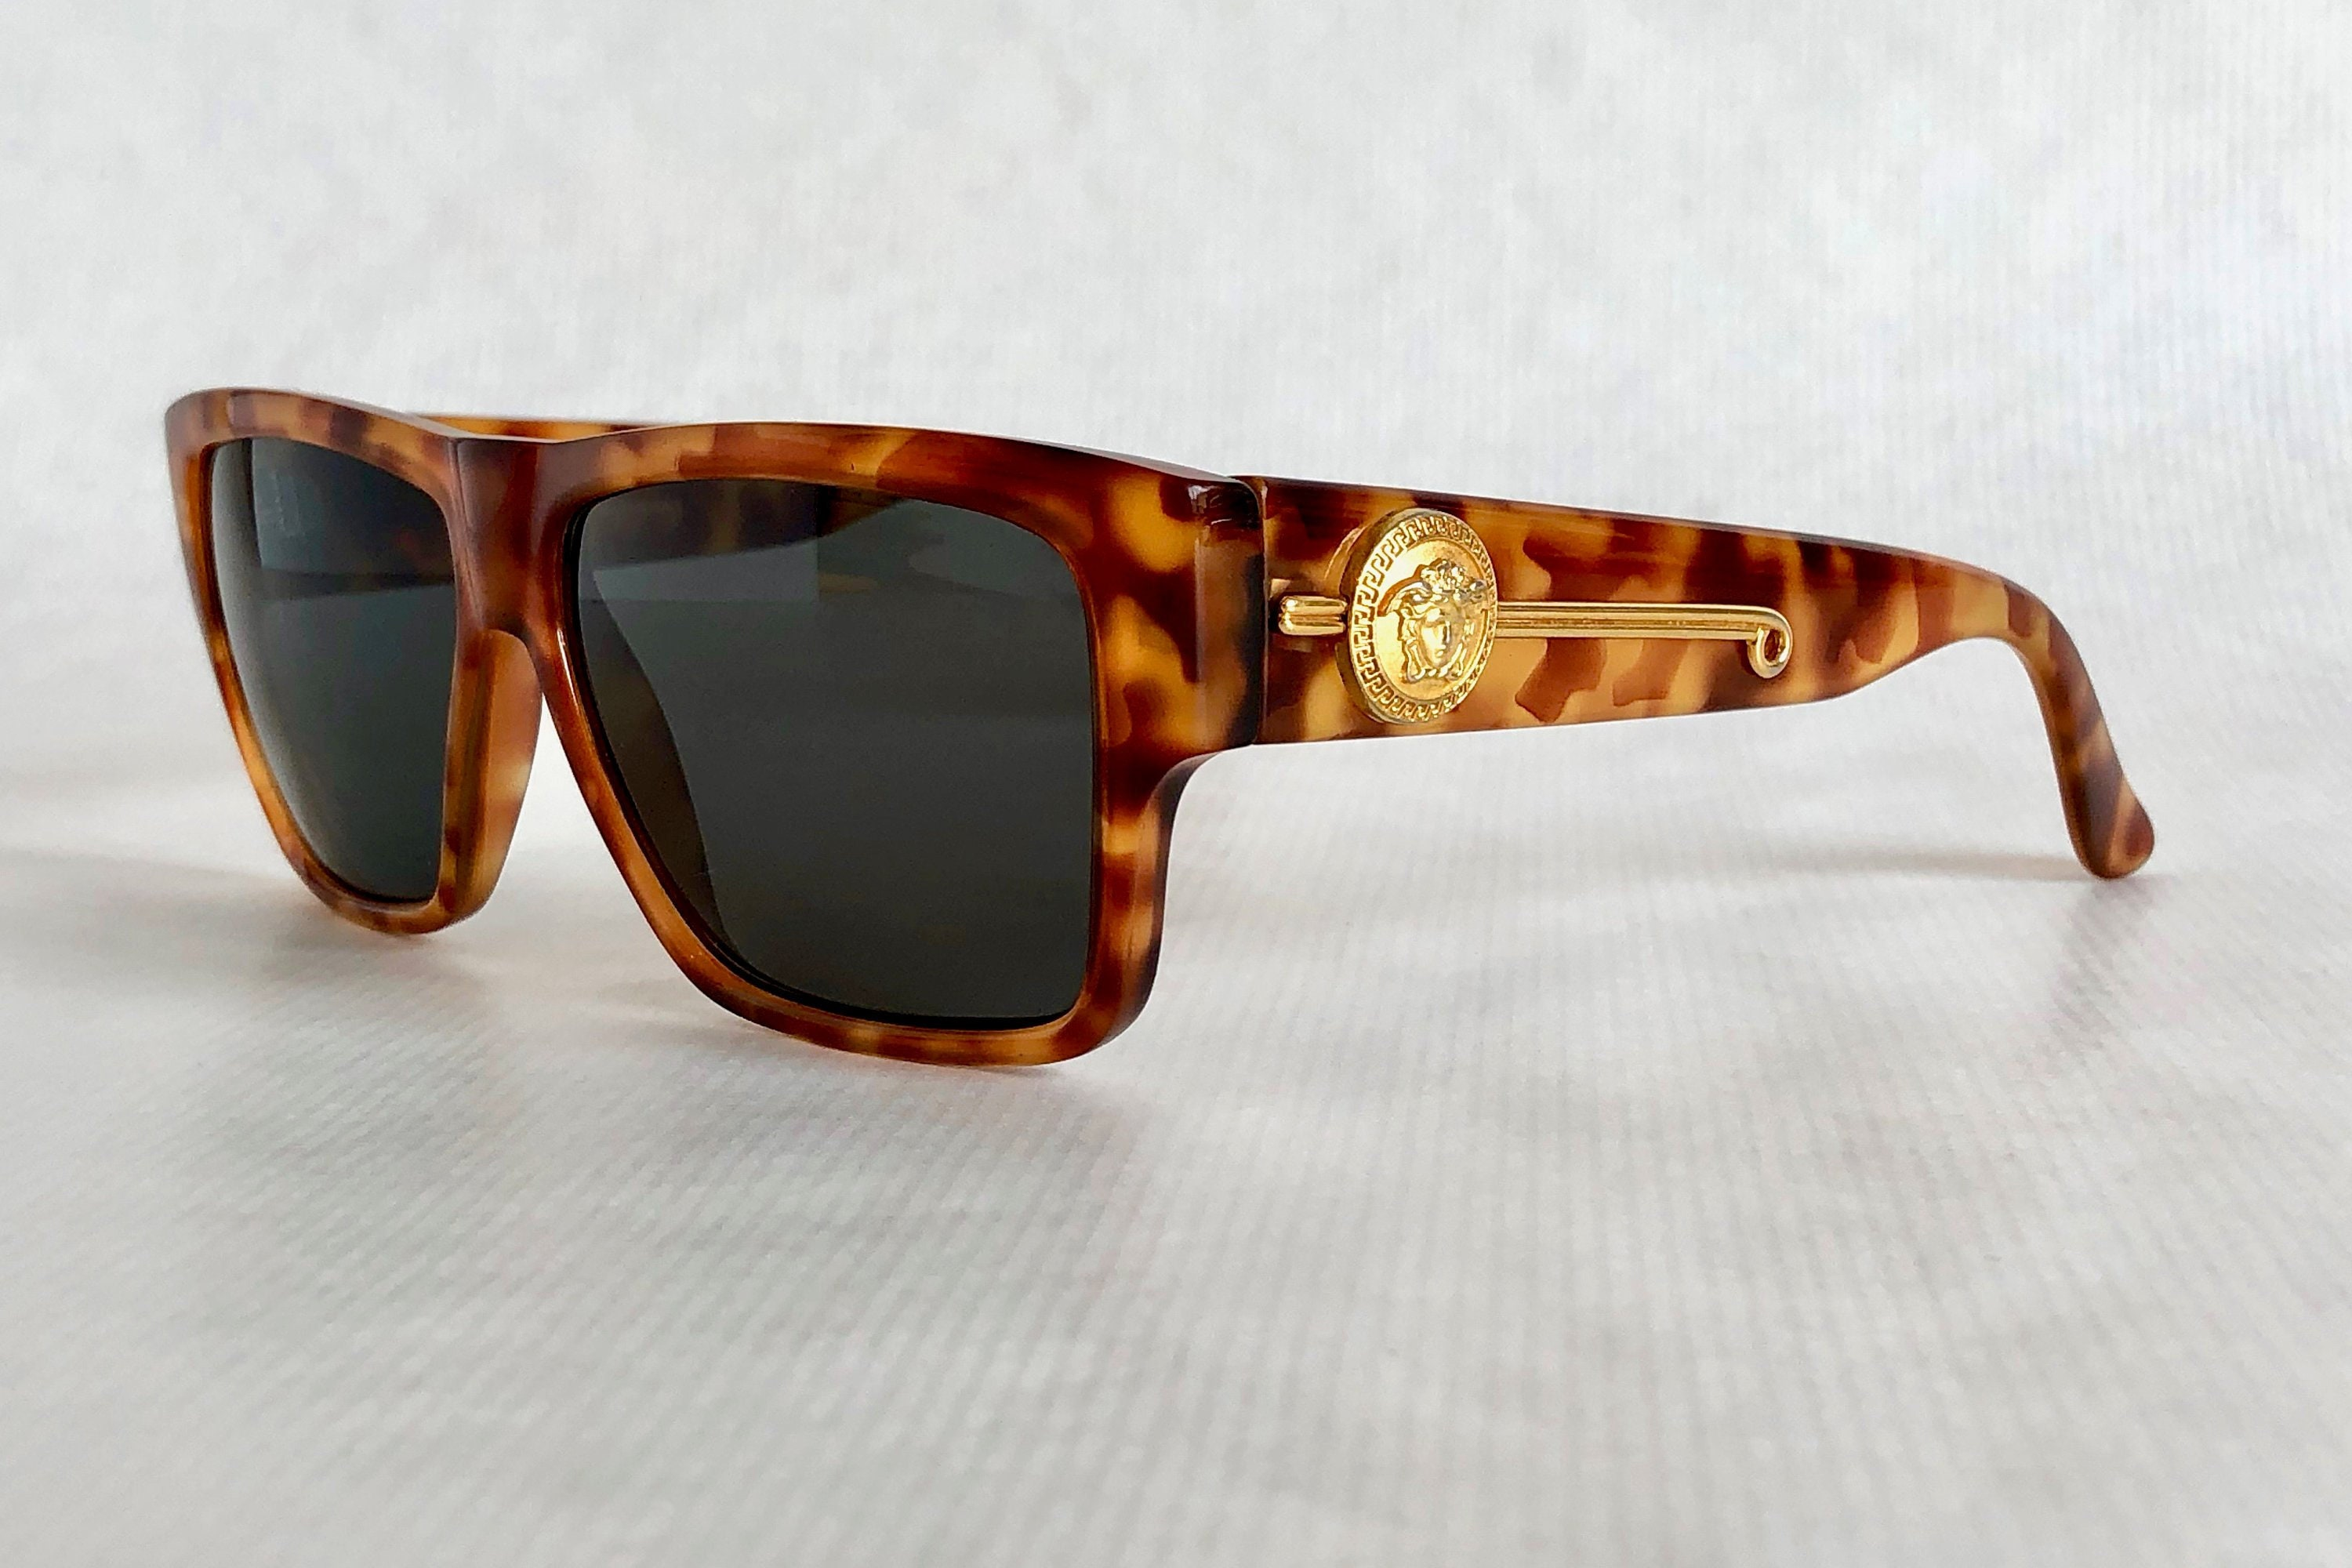 c7e80e6d9b7c1 Gianni Versace 372 DM Col 830 BD Vintage Sunglasses – New Old ...